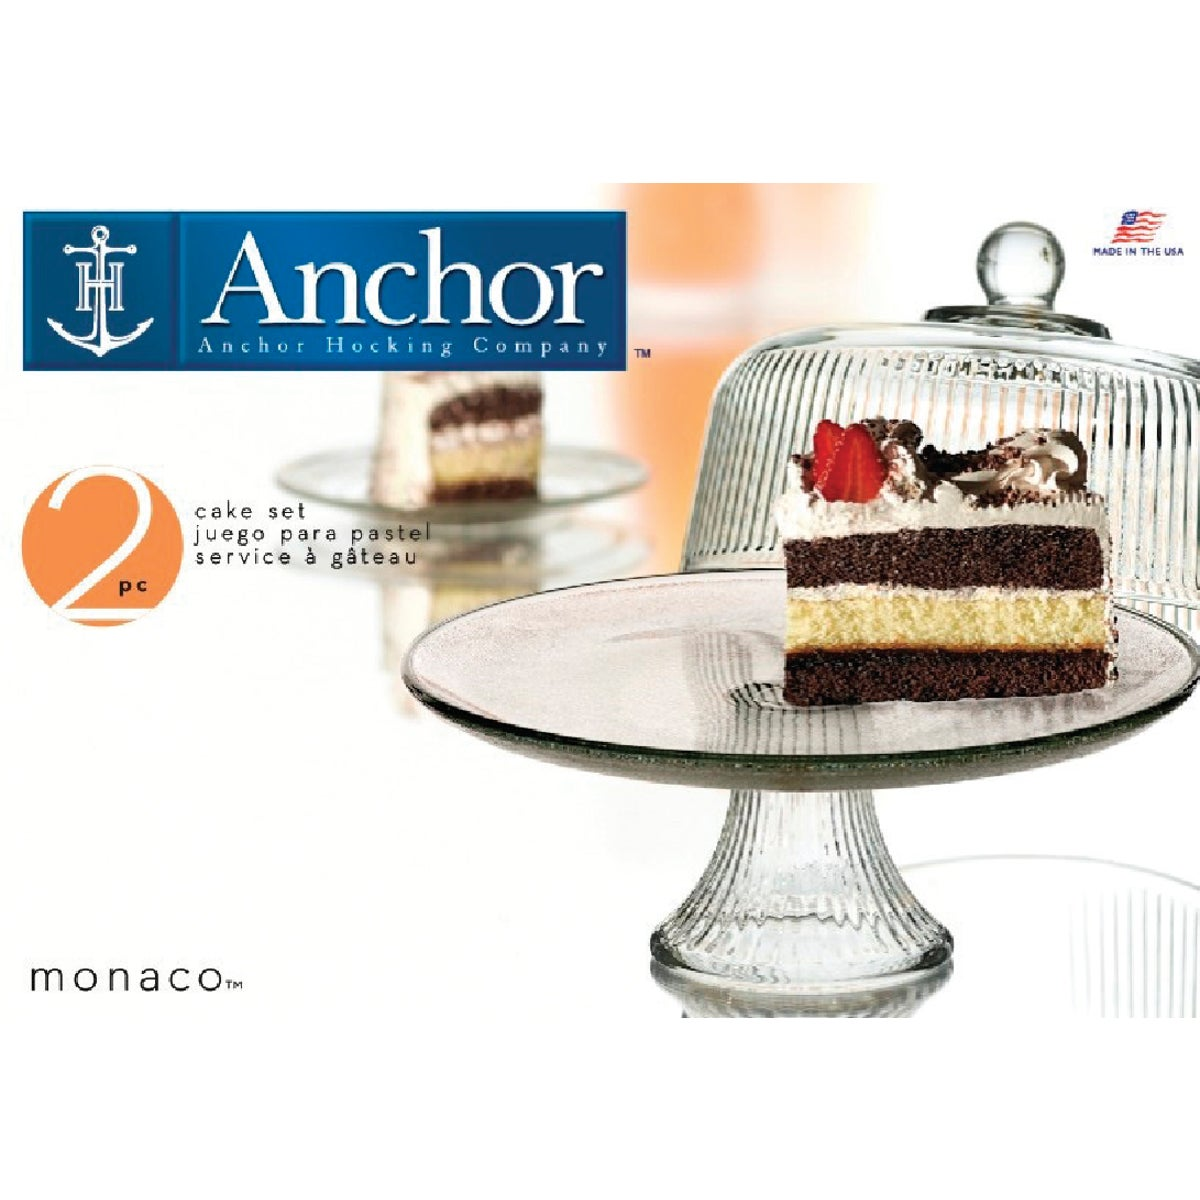 MONACO DOME CAKE SET - 86031L6 by Anchor Hckg Roberts